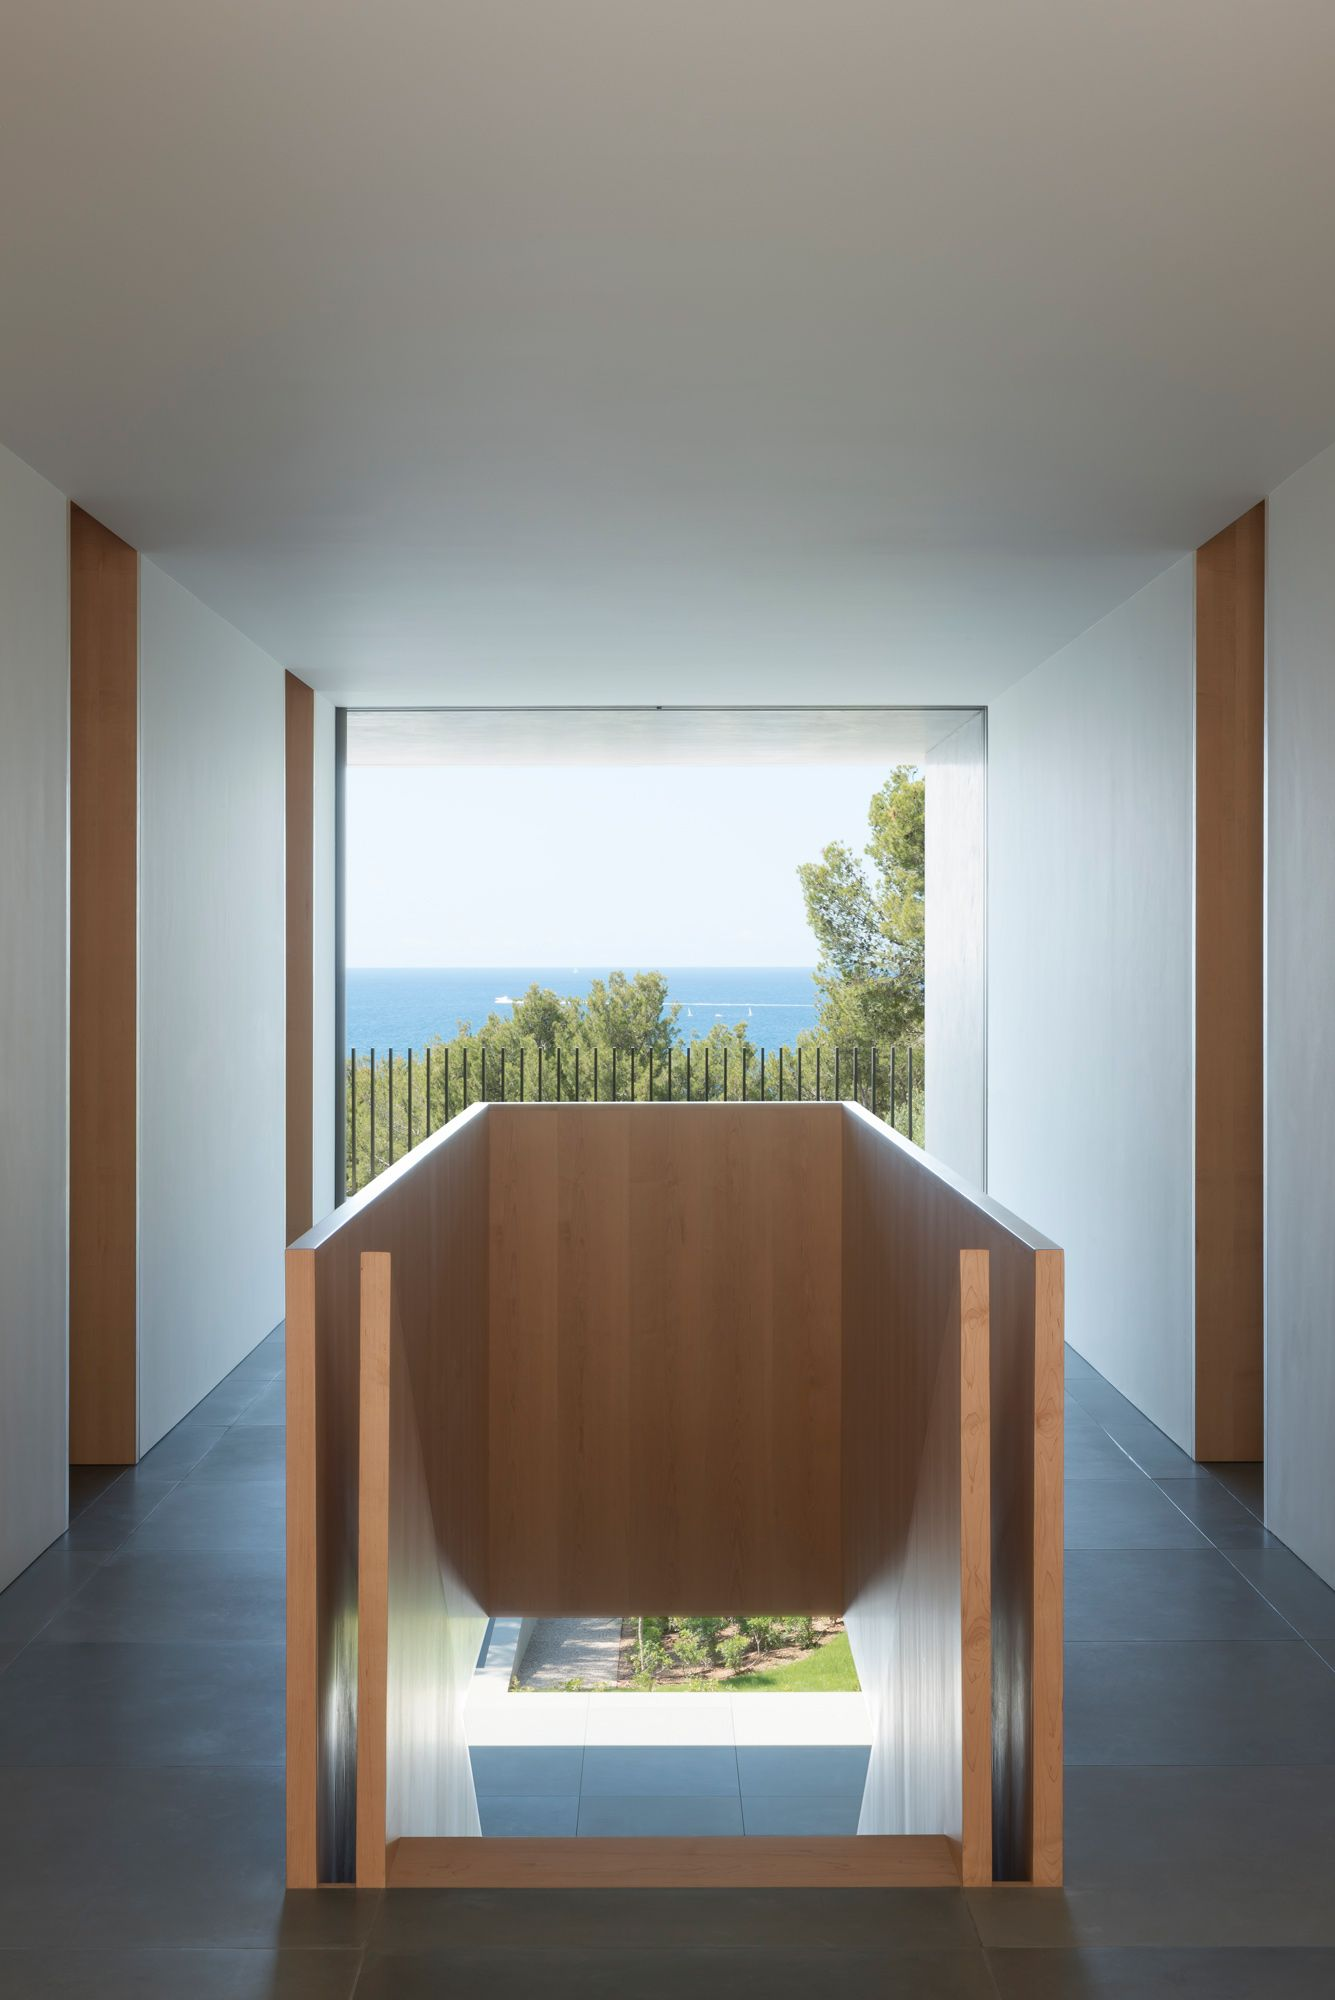 Beauttiful staircase with a view to the sea. the Picornell House by John Pawson.